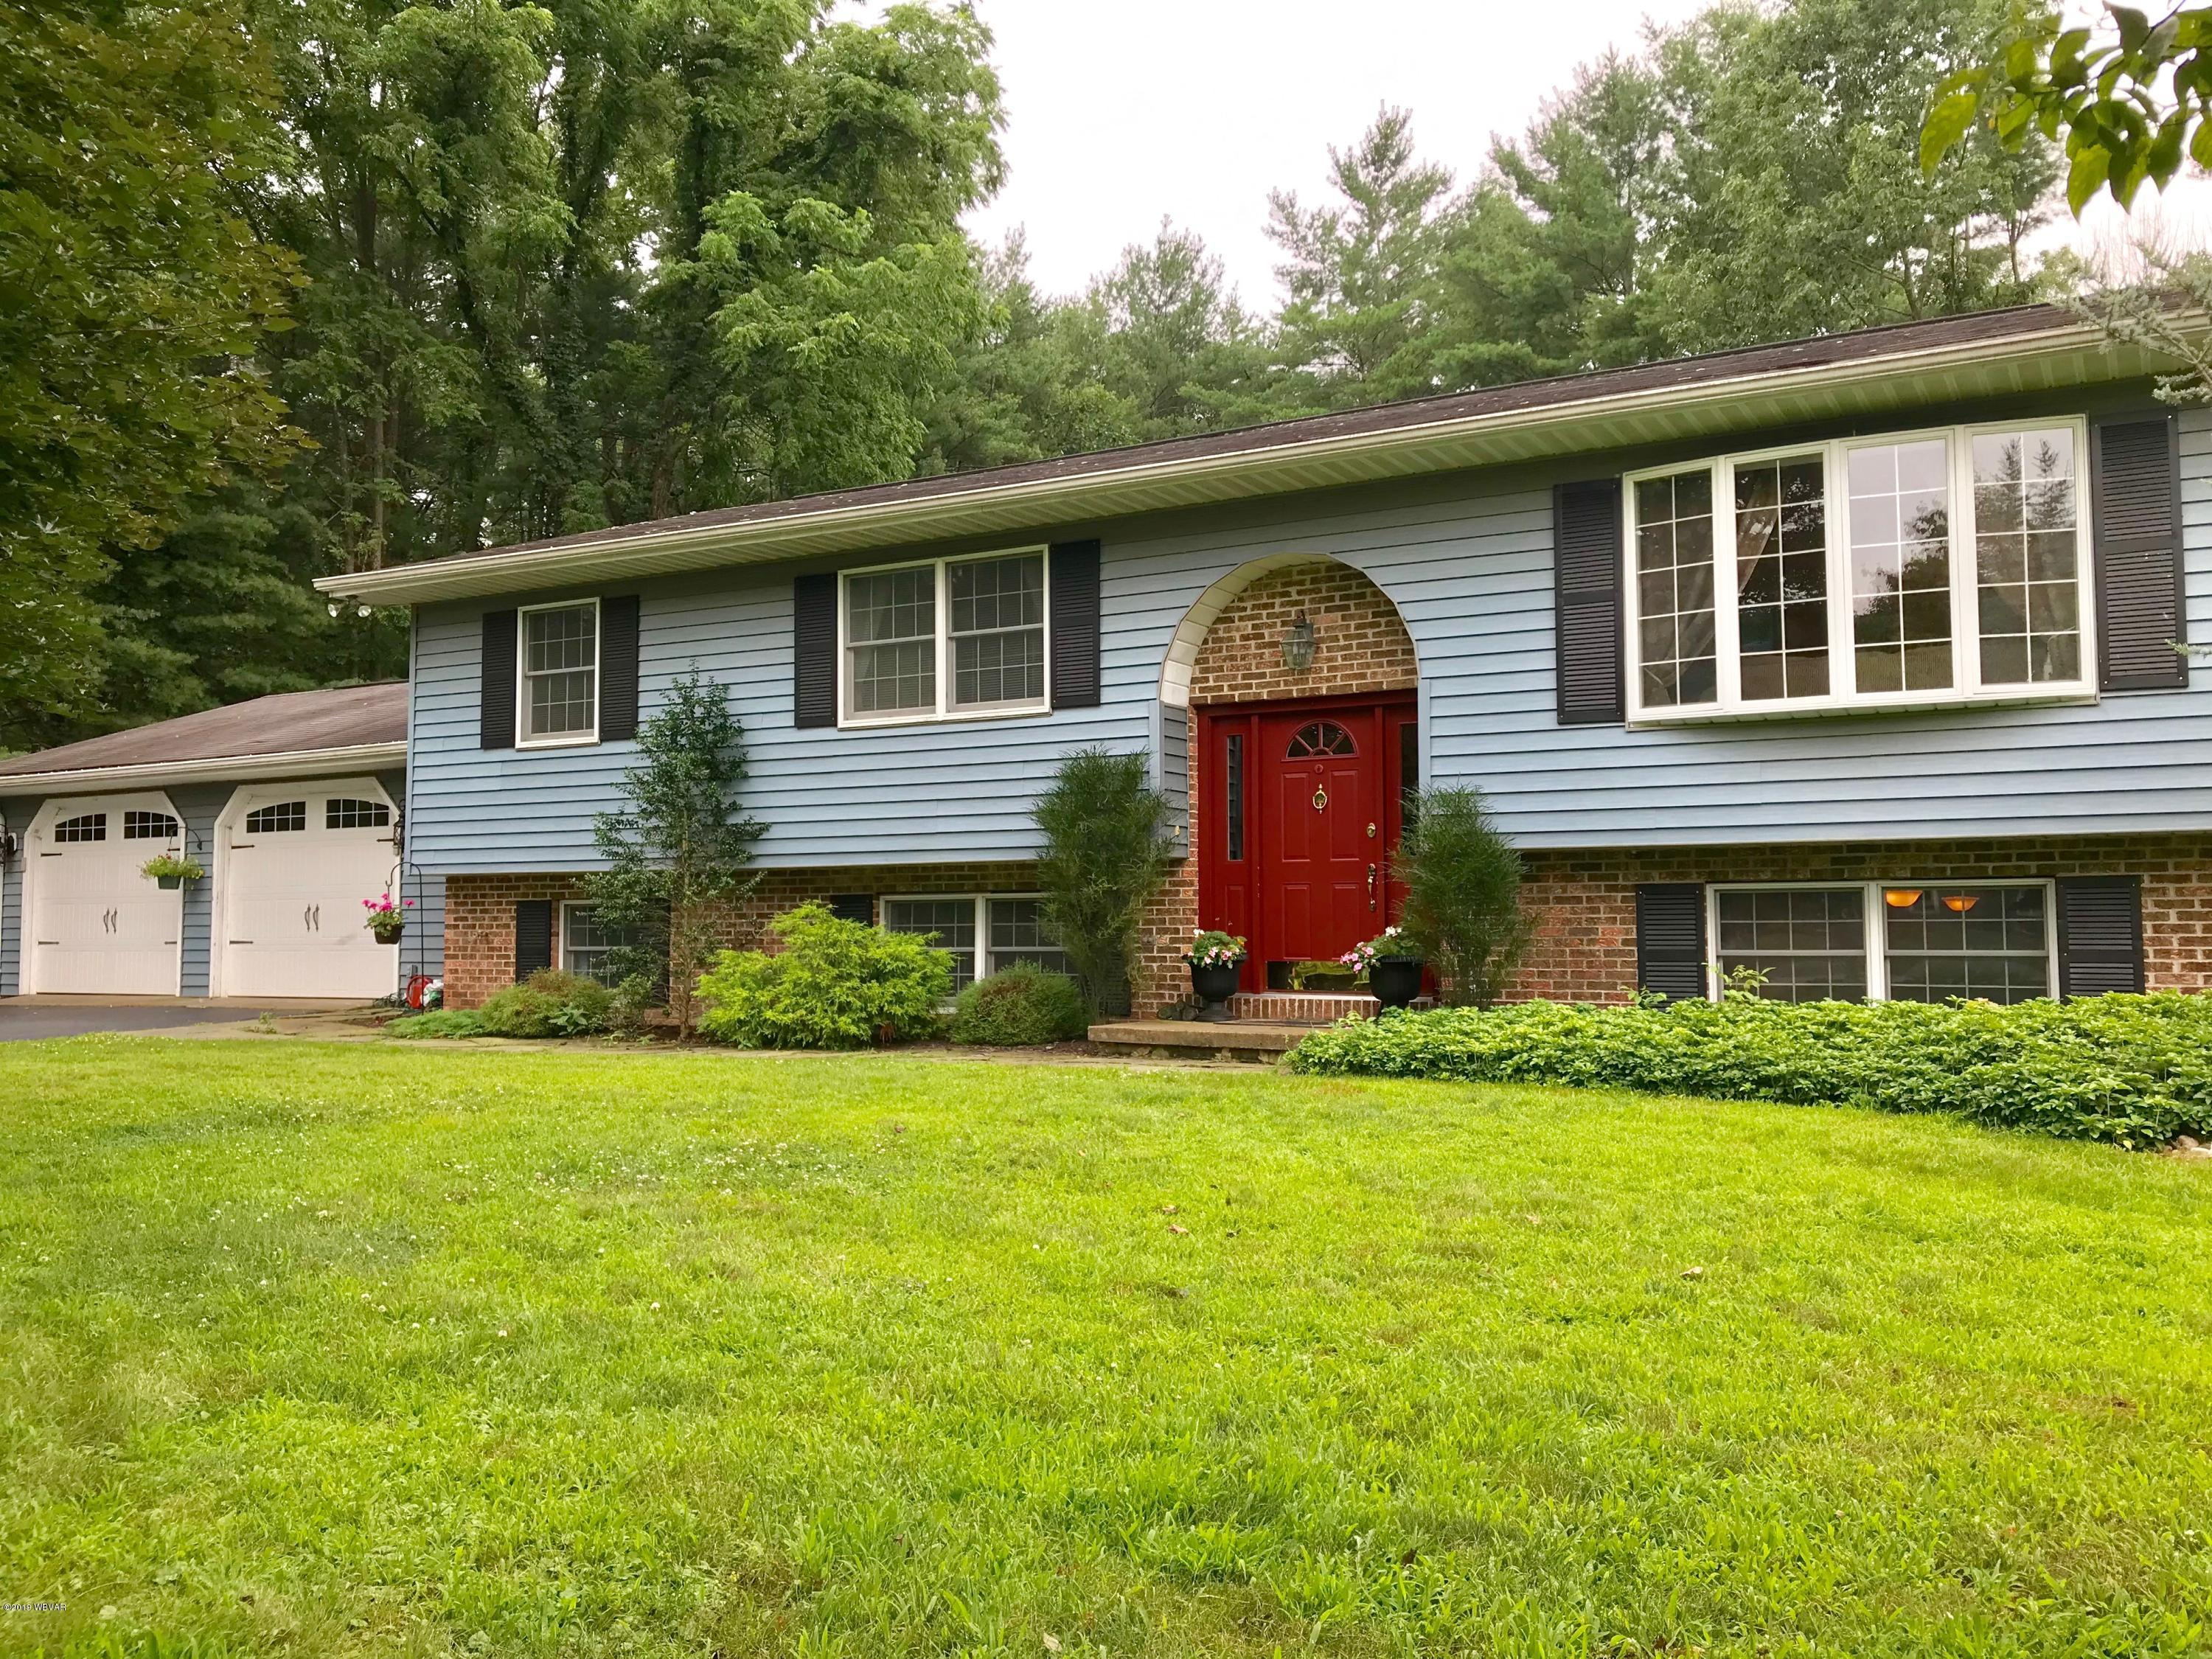 287 BAXTER ROAD,Montoursville,PA 17754,3 Bedrooms Bedrooms,3 BathroomsBathrooms,Residential,BAXTER,WB-87967